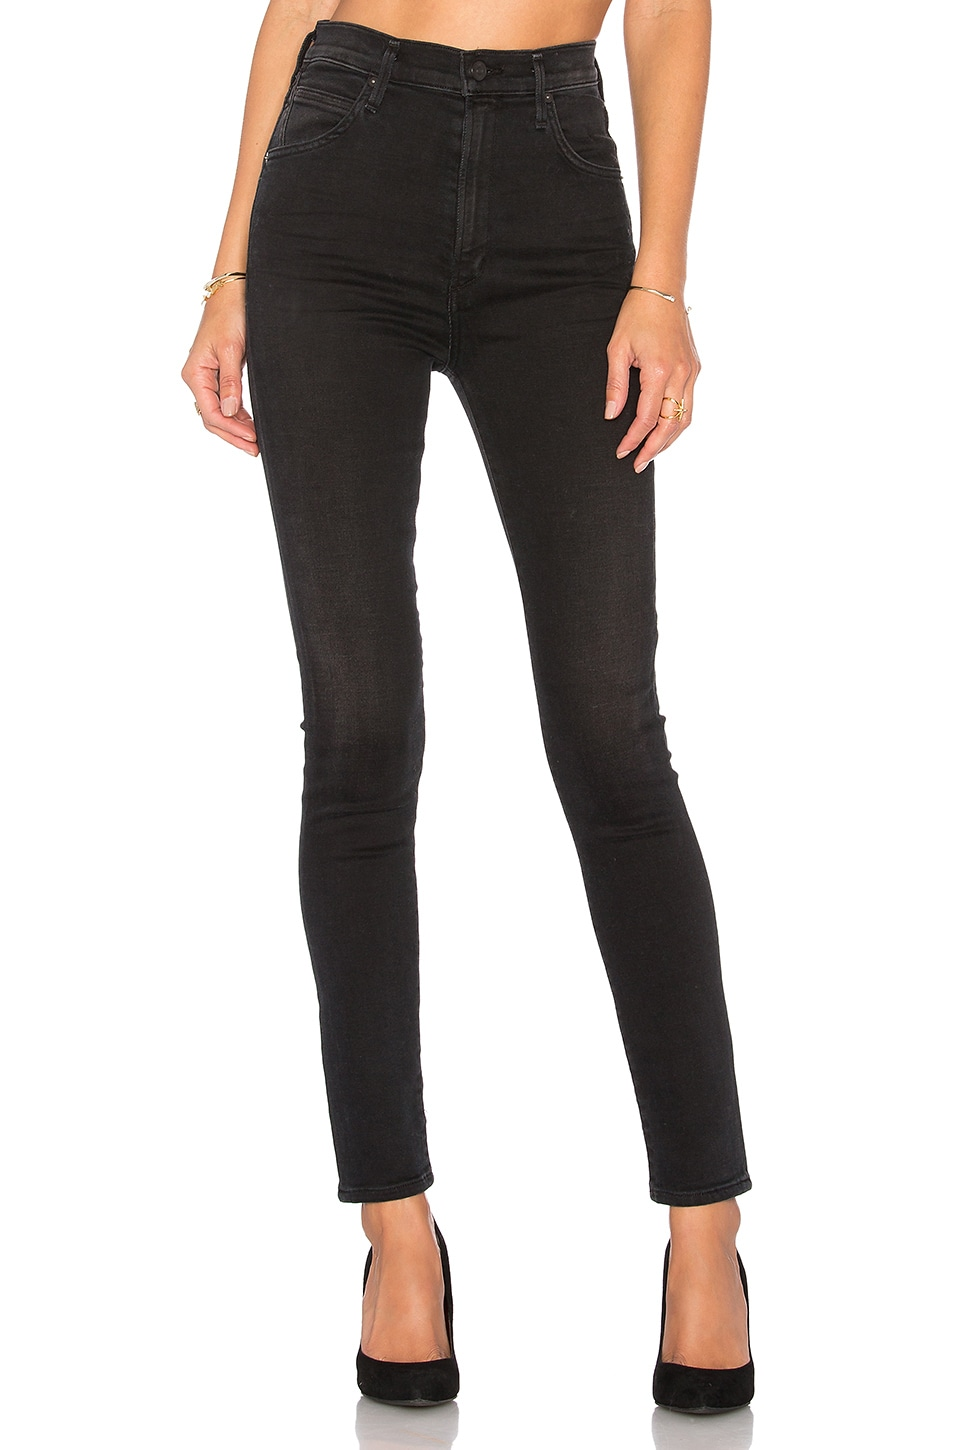 Chrissy Uber High Rise Skinny Citizens of Humanity $218 ...